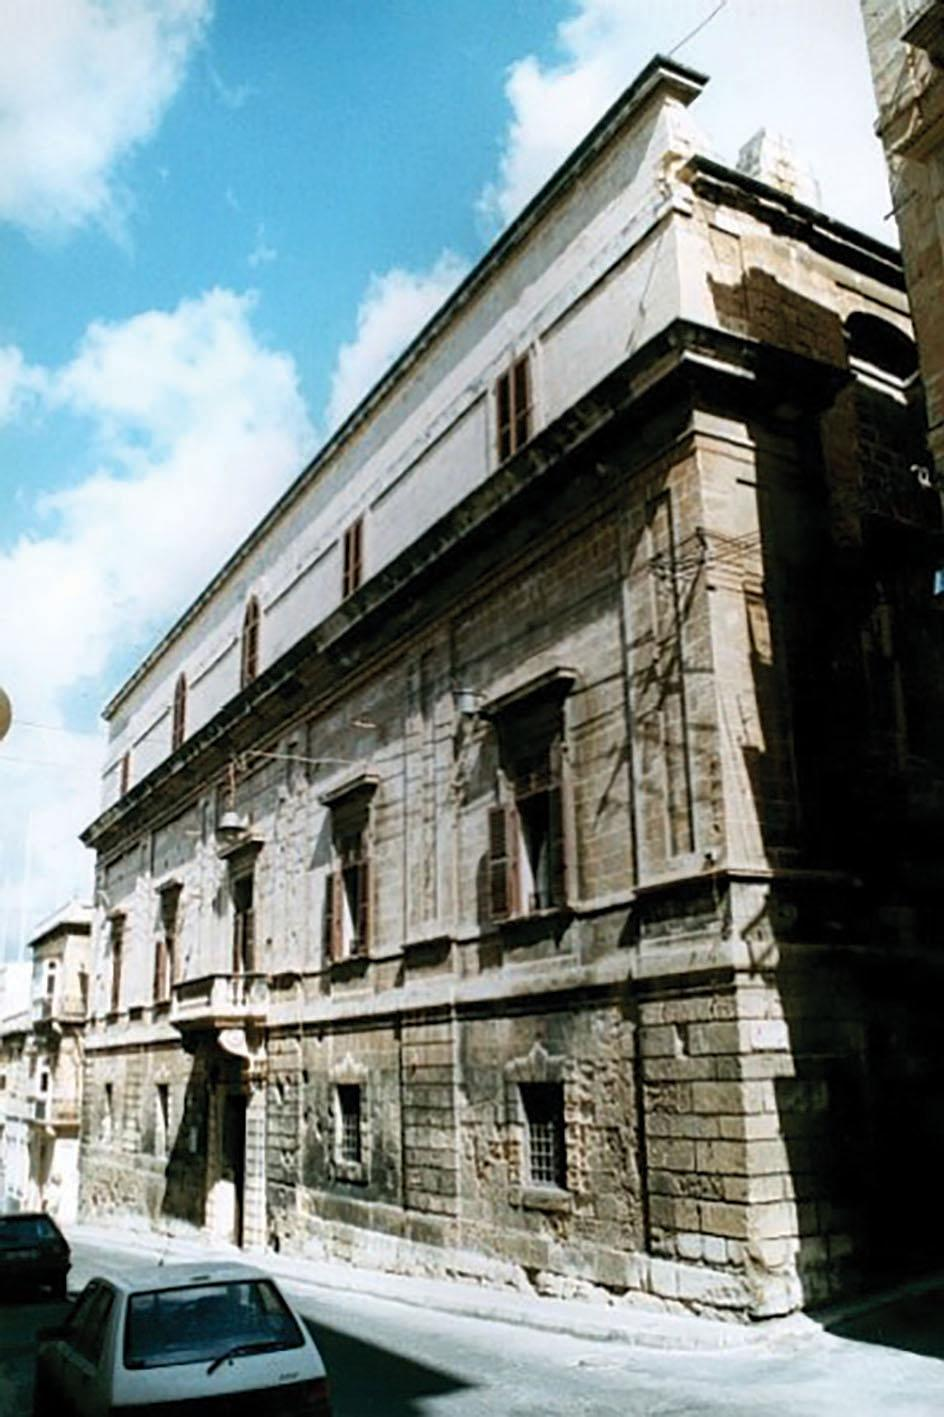 The façade of the Inquistors' Palace. Photo: Courtesy of Heritage Malta